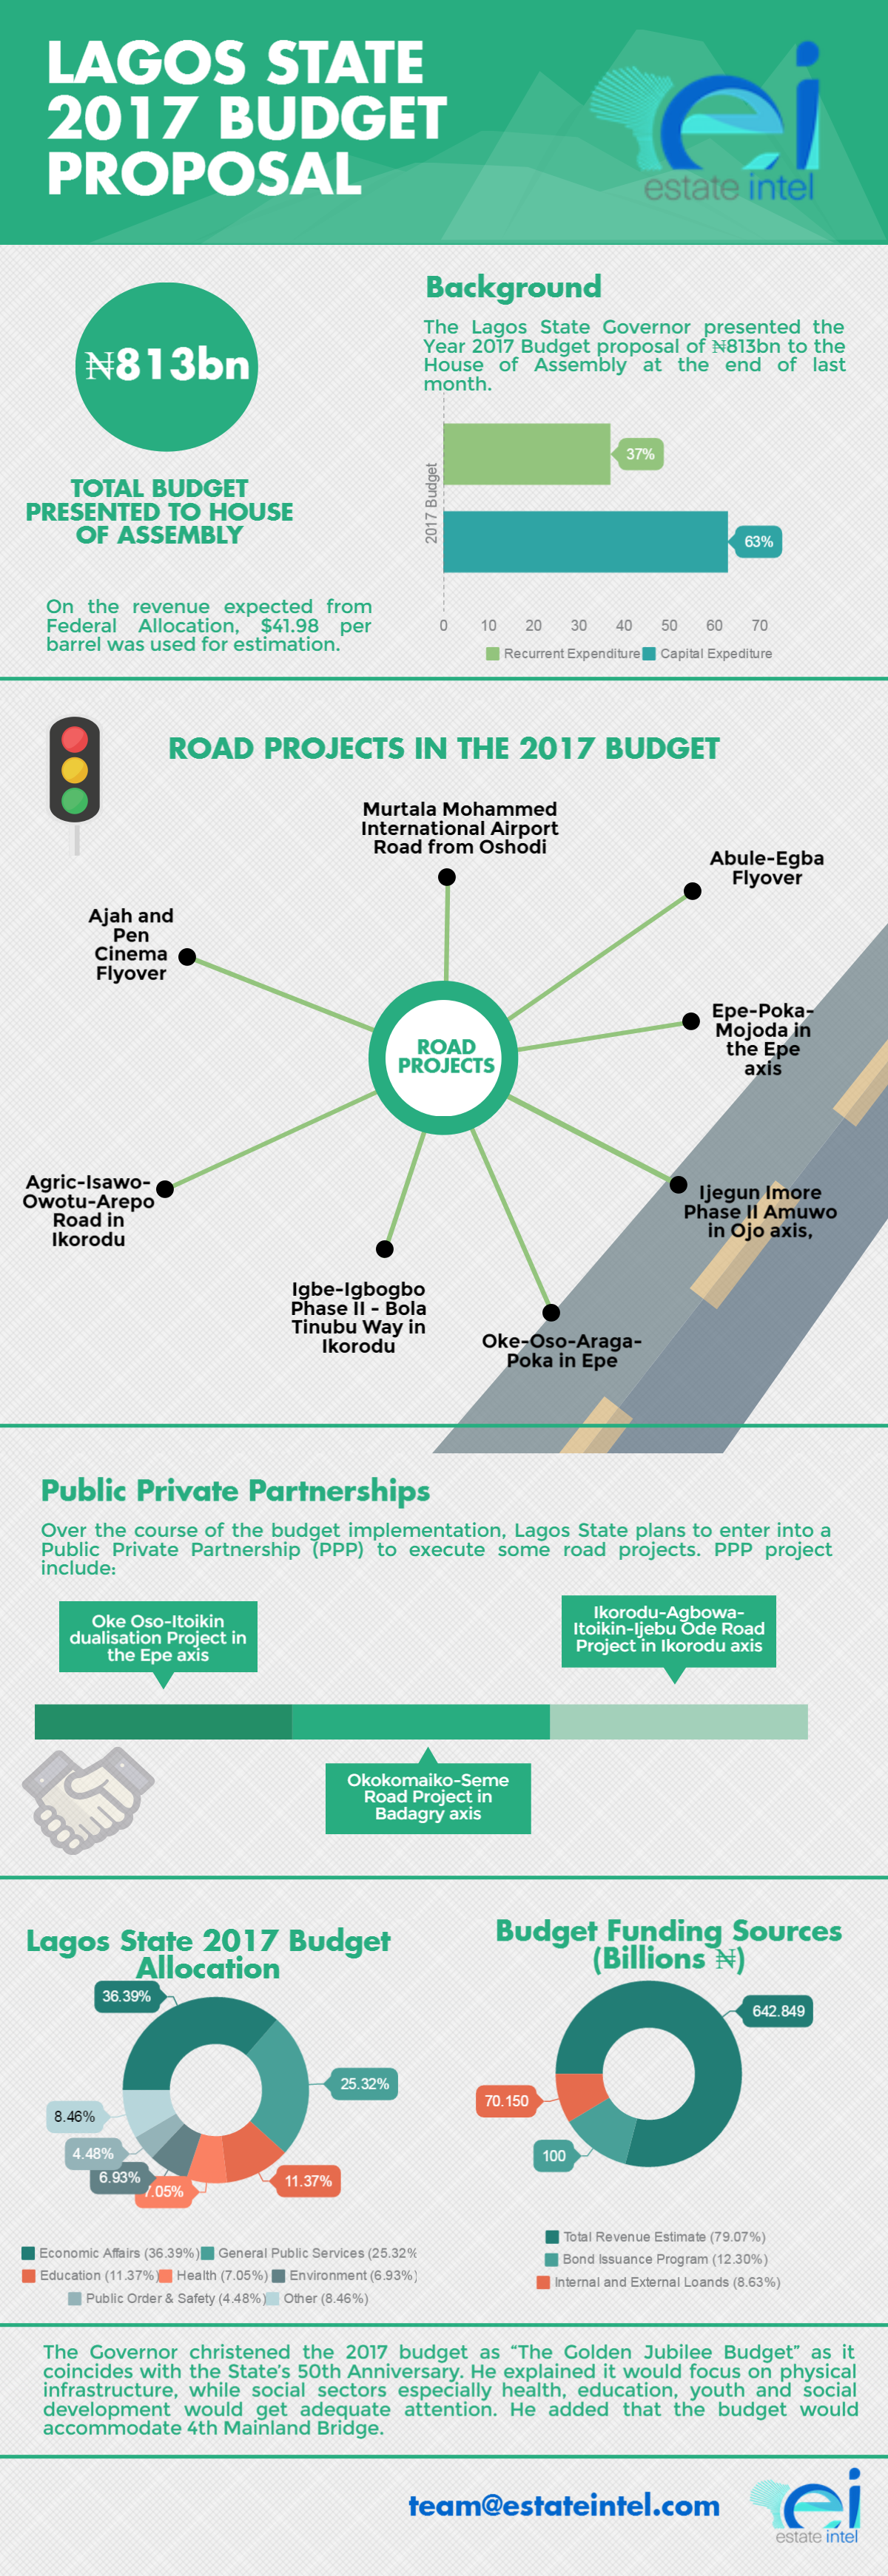 Infogrpahic: Lagos State 2017 Budget Proposal To Focus on Infrastructure